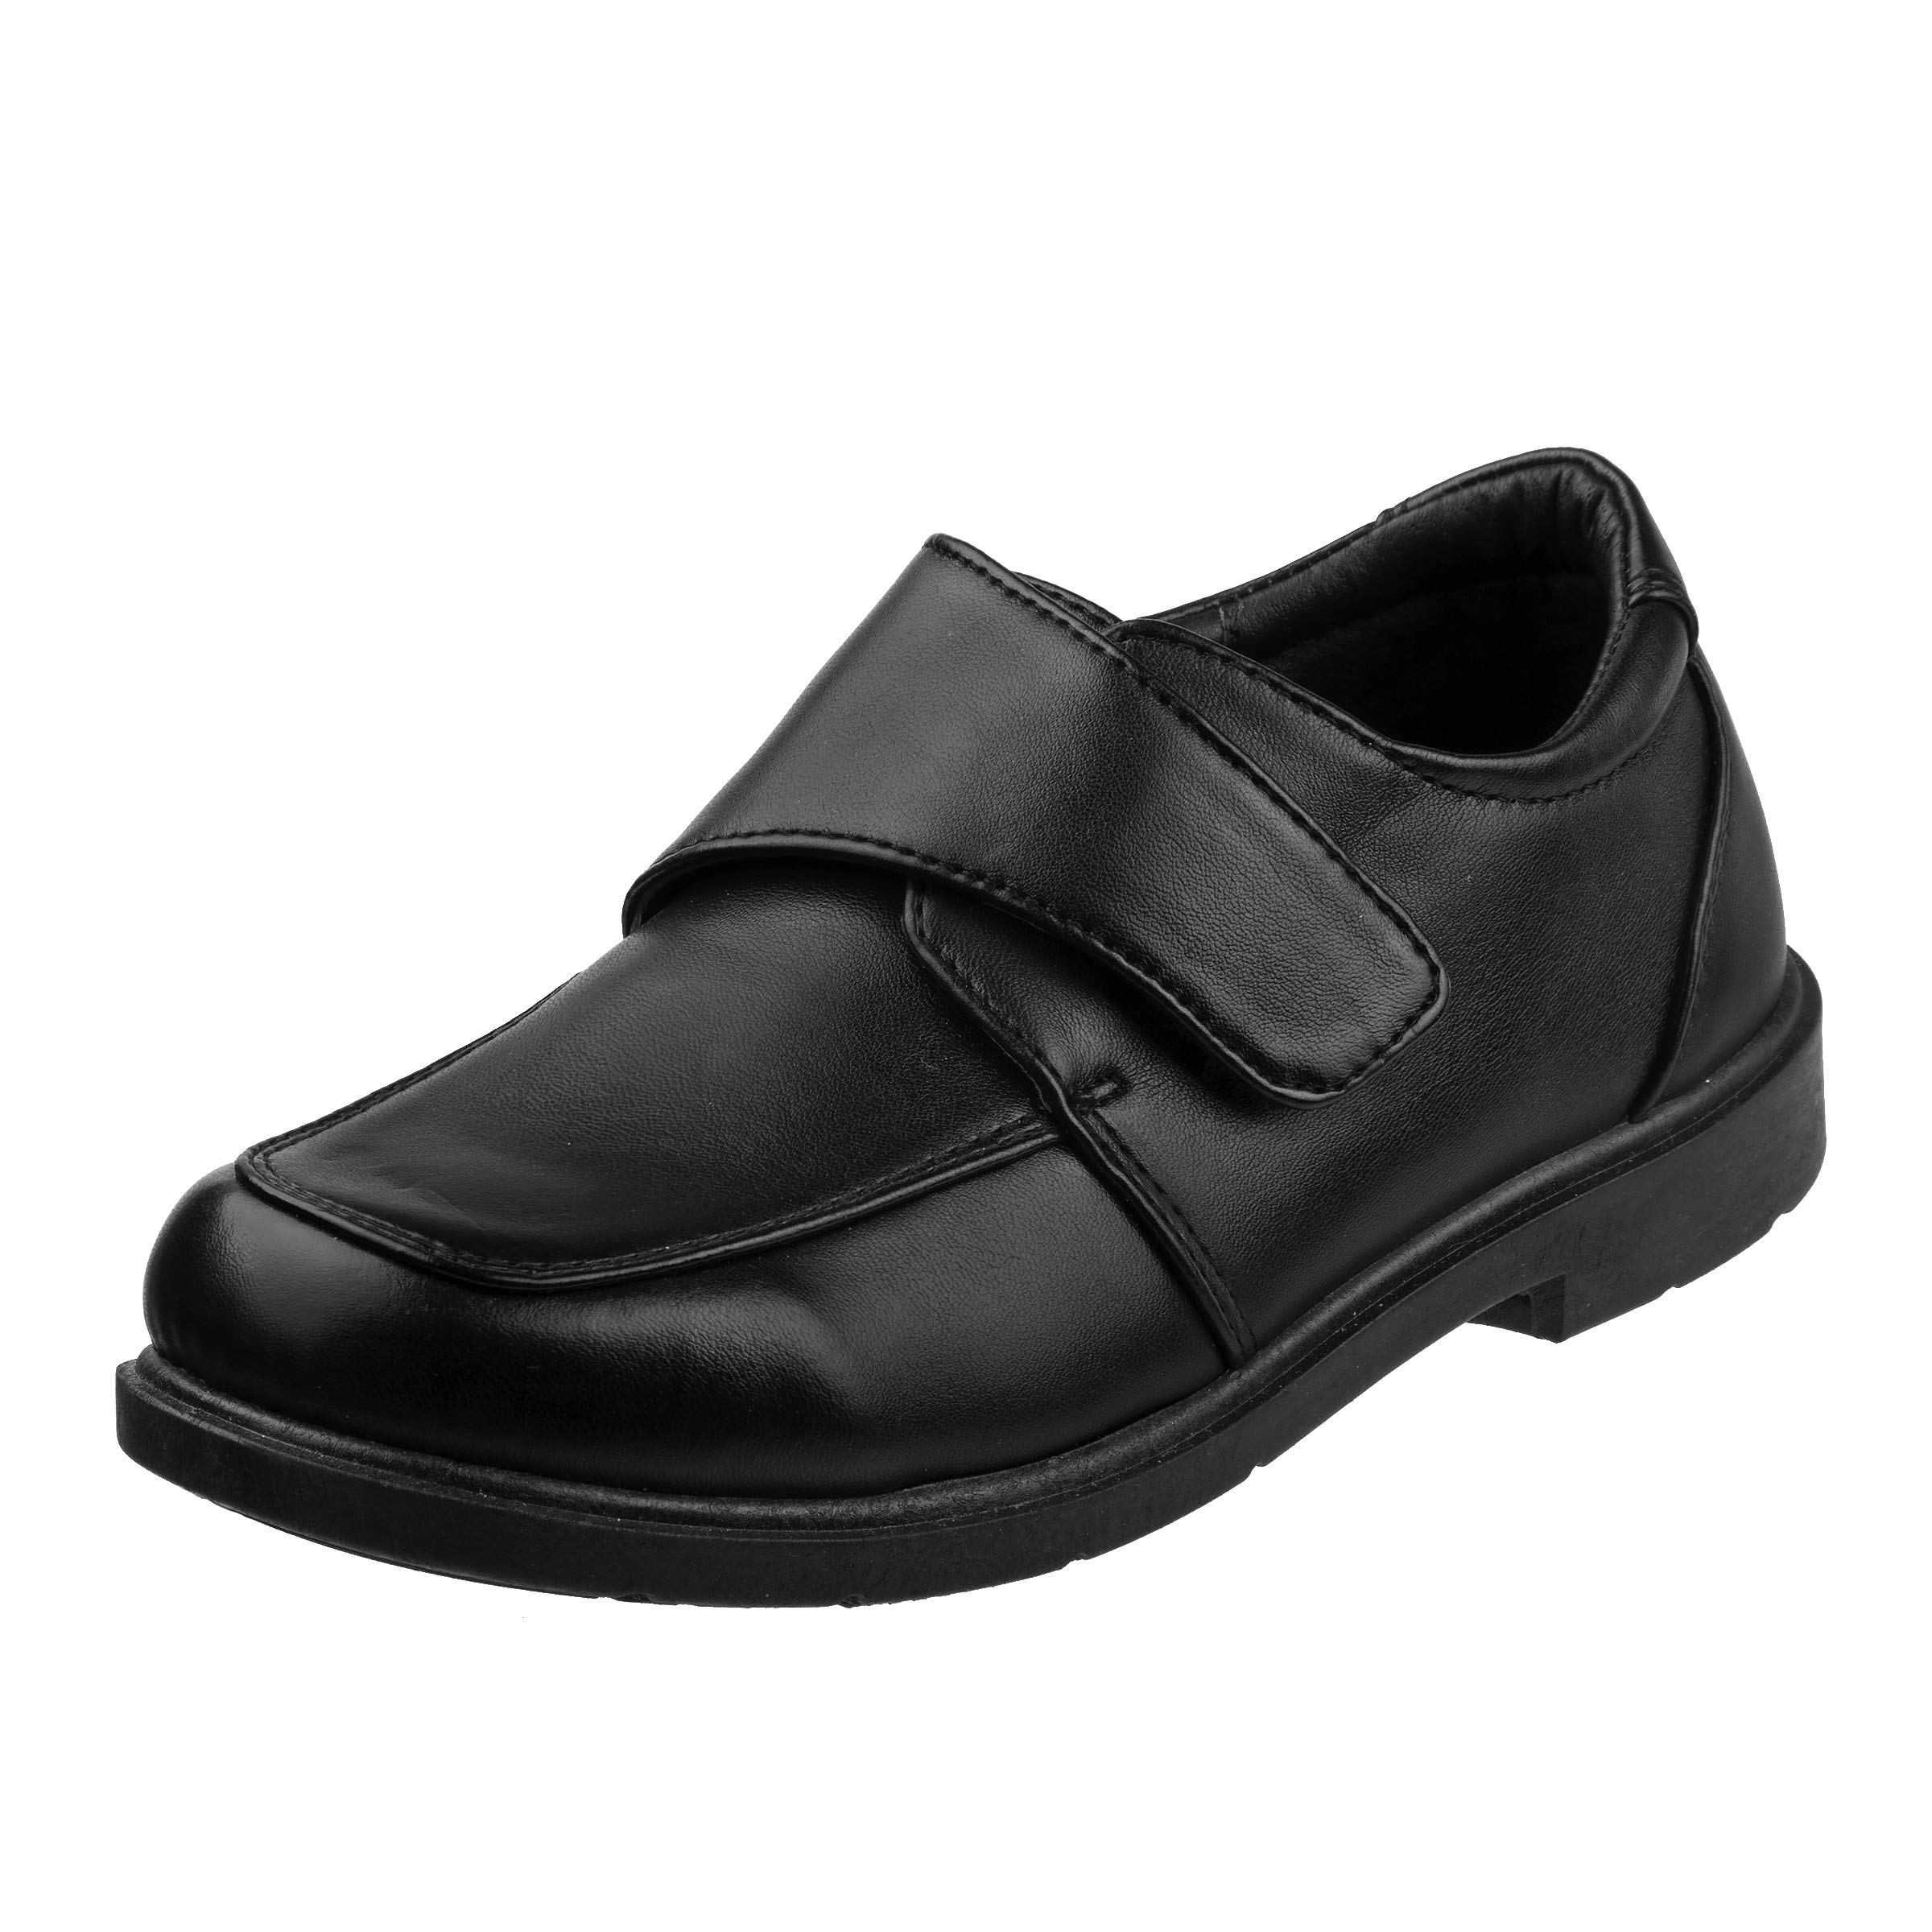 Josmo Boys Comfort School Uniform Shoes, Black Strap, 1 M US Little Kid'